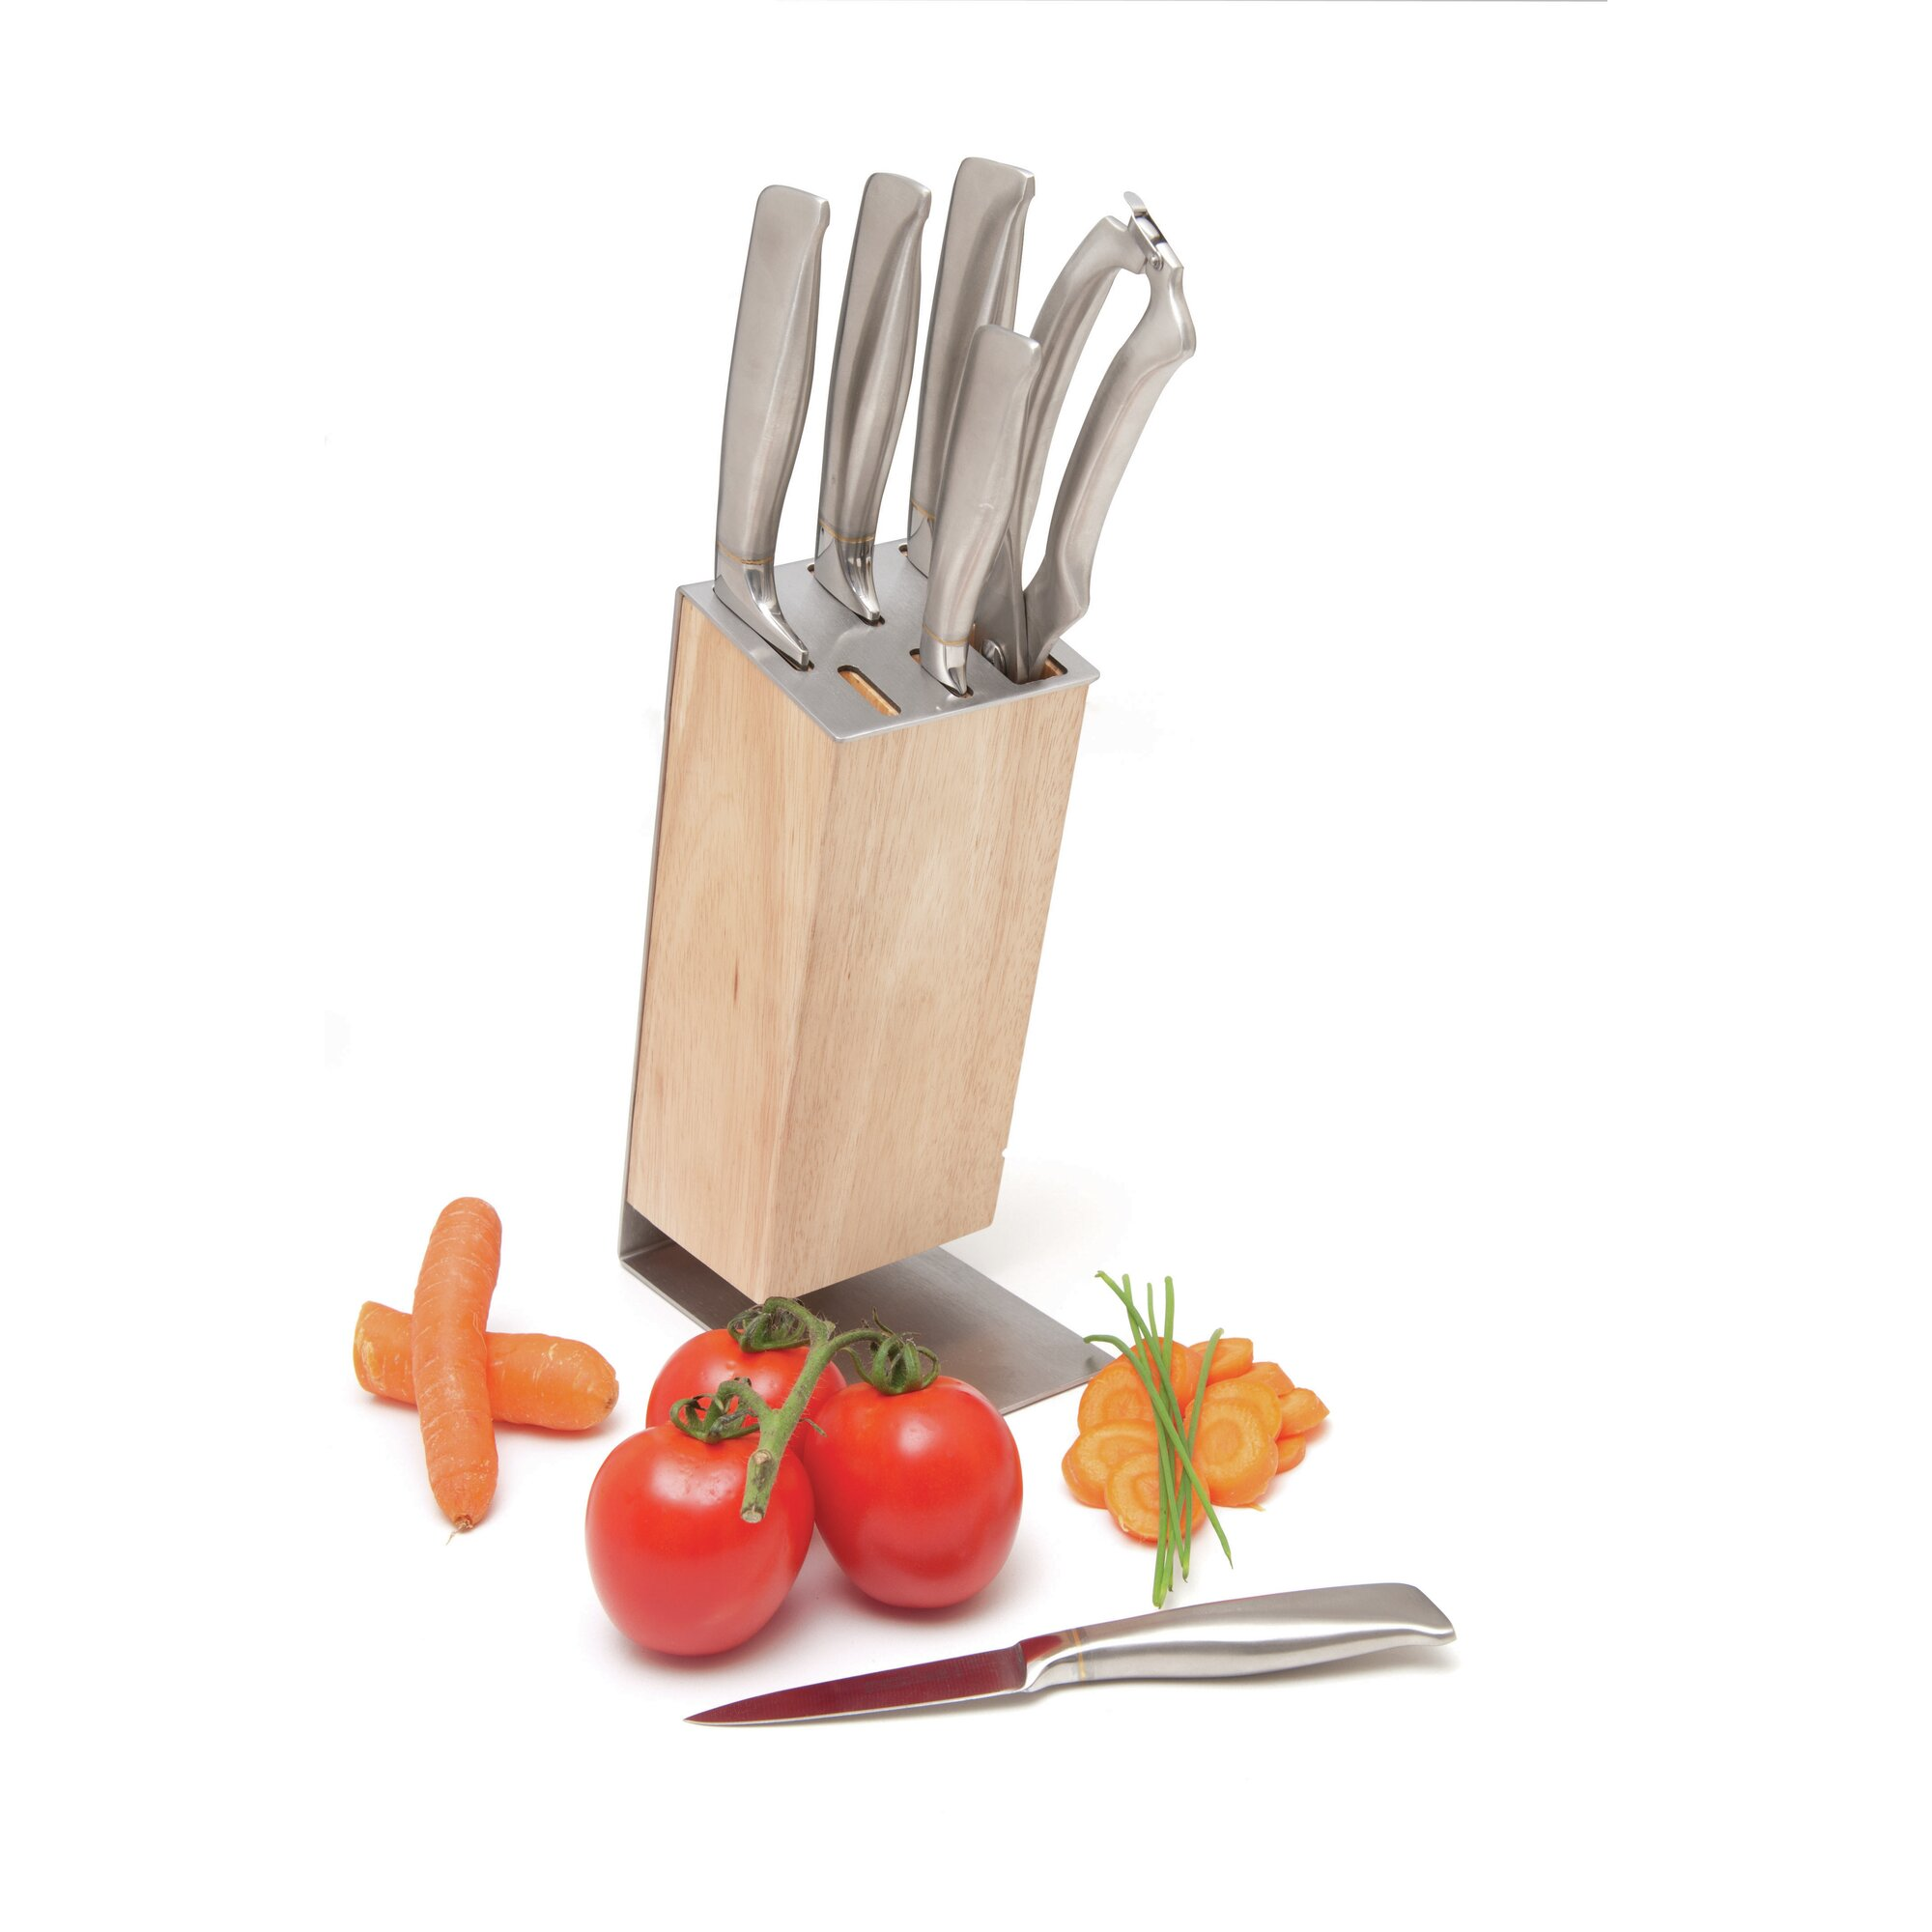 knife block set u0026 reviews wayfair 17 piece knife block set